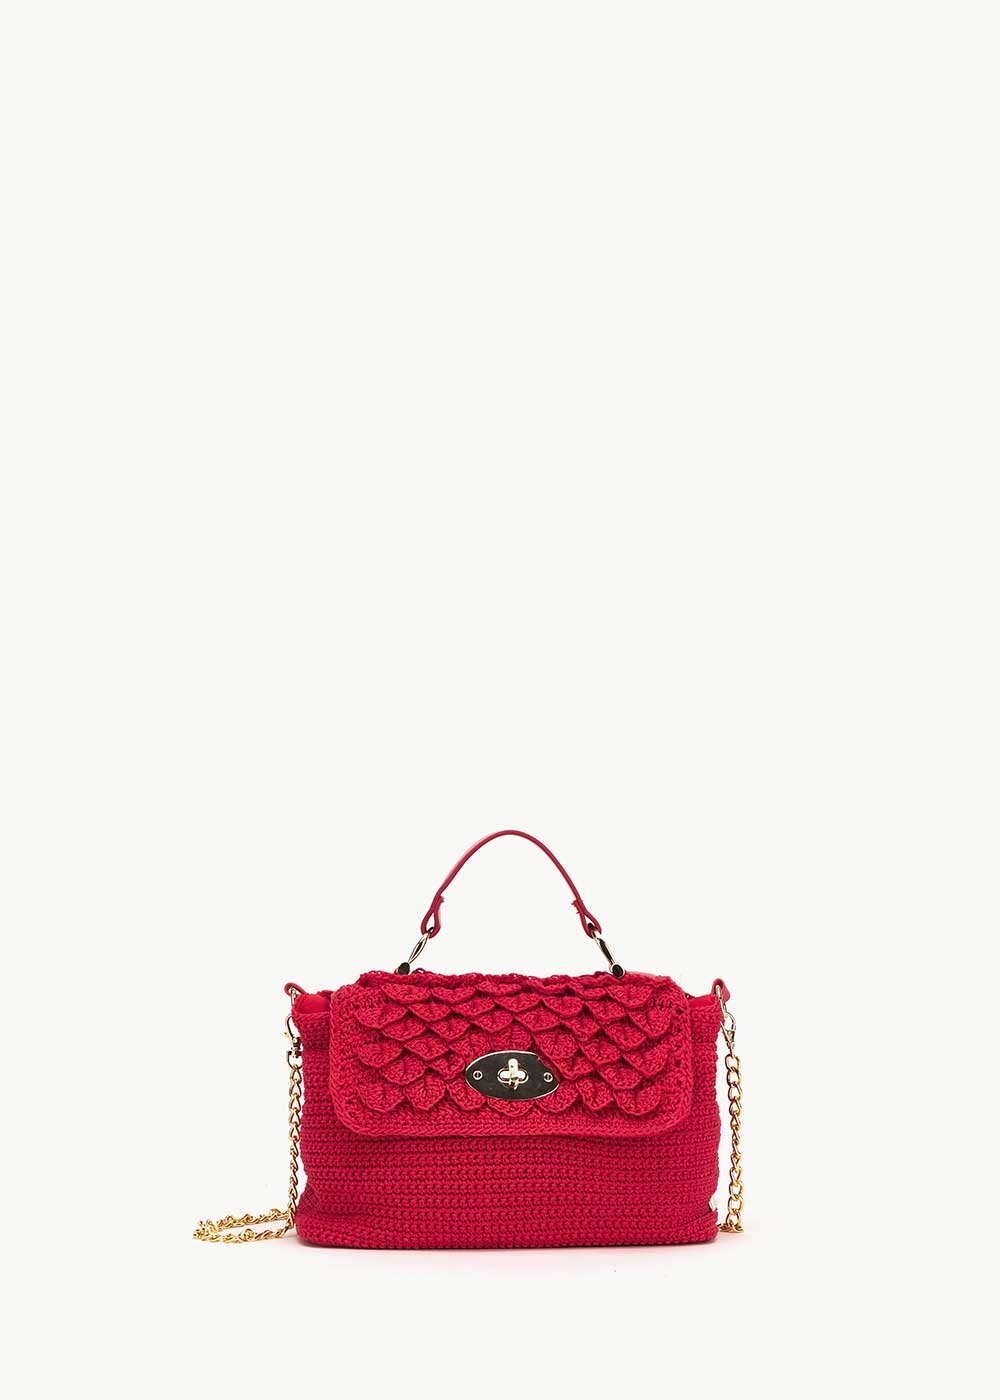 Birdie soft crochet clutch bag - Lobster - Woman